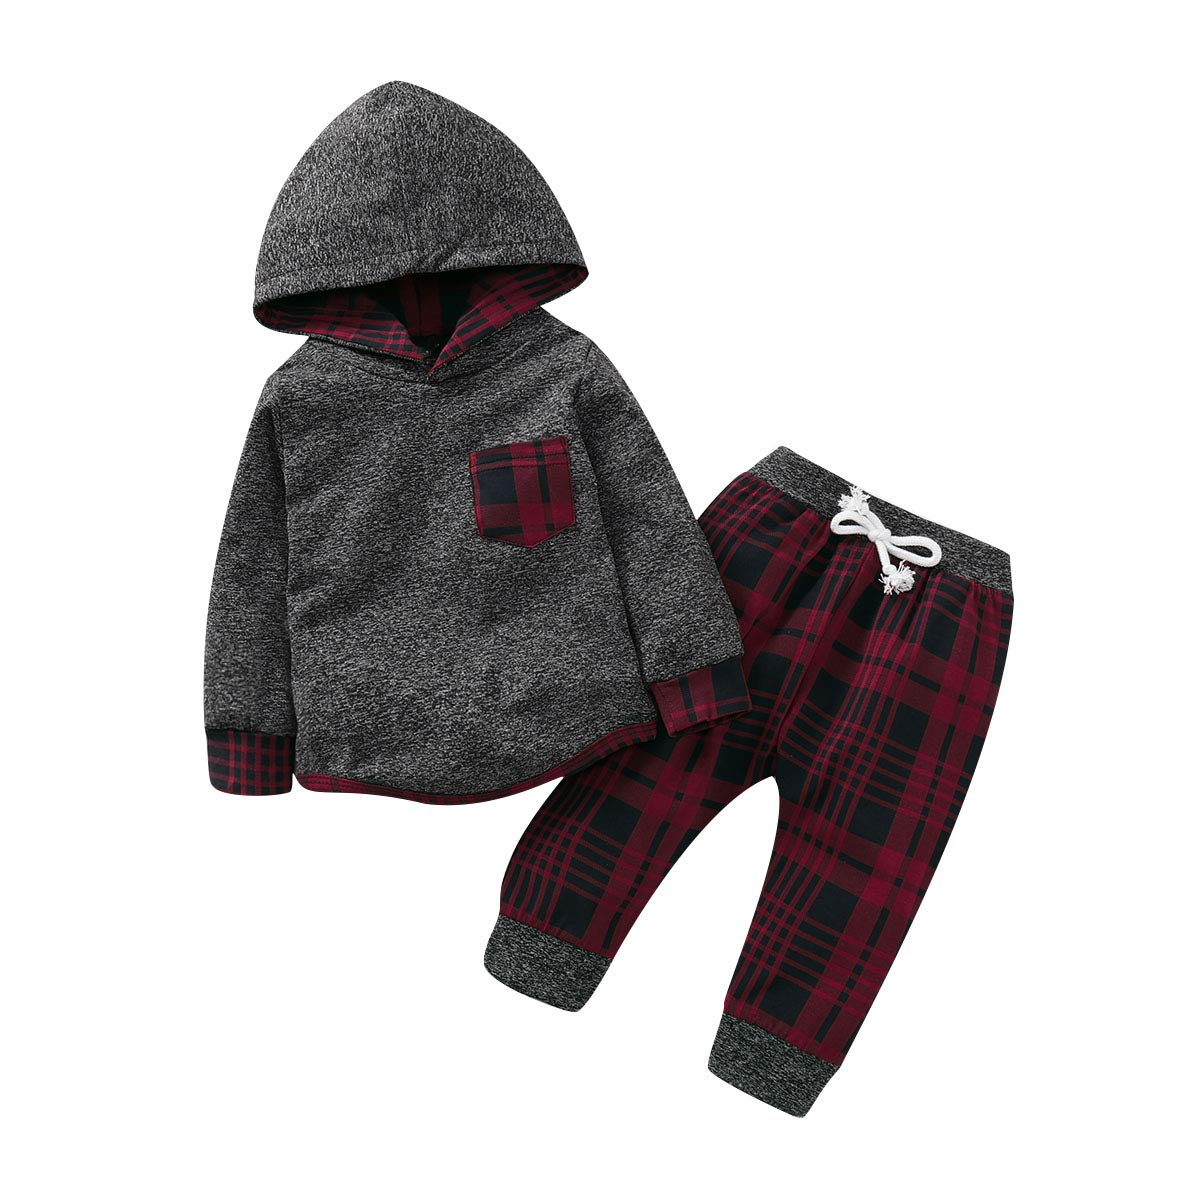 Toddler Infant Baby Boys Girls Plaid Hoodie Sweatshirt Tops+Pants Winter Fall Clothes Outfit Set 0-3Y